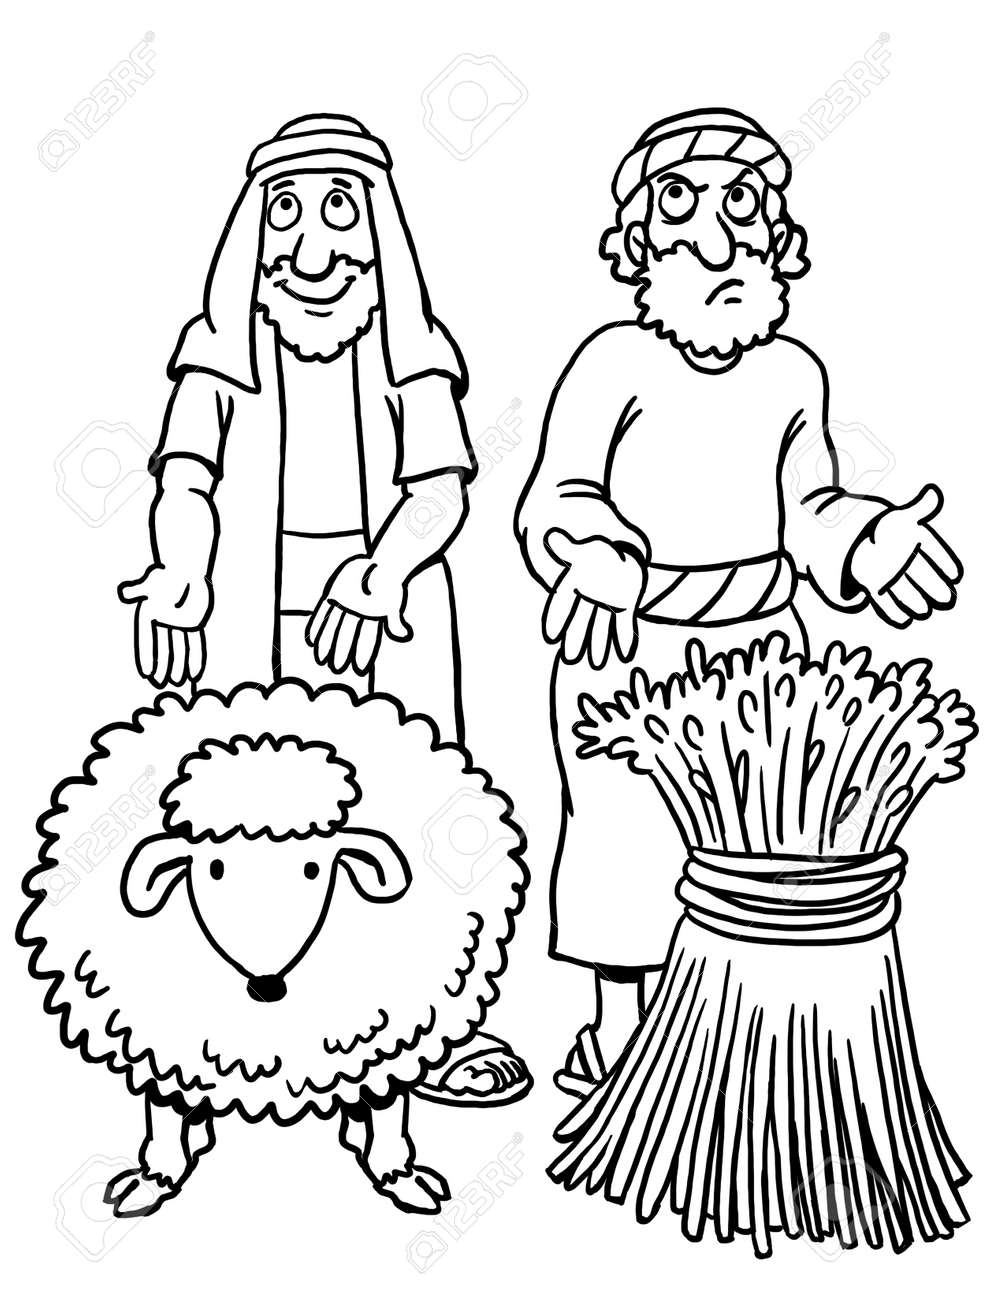 Coloring Page of Cain and Abel